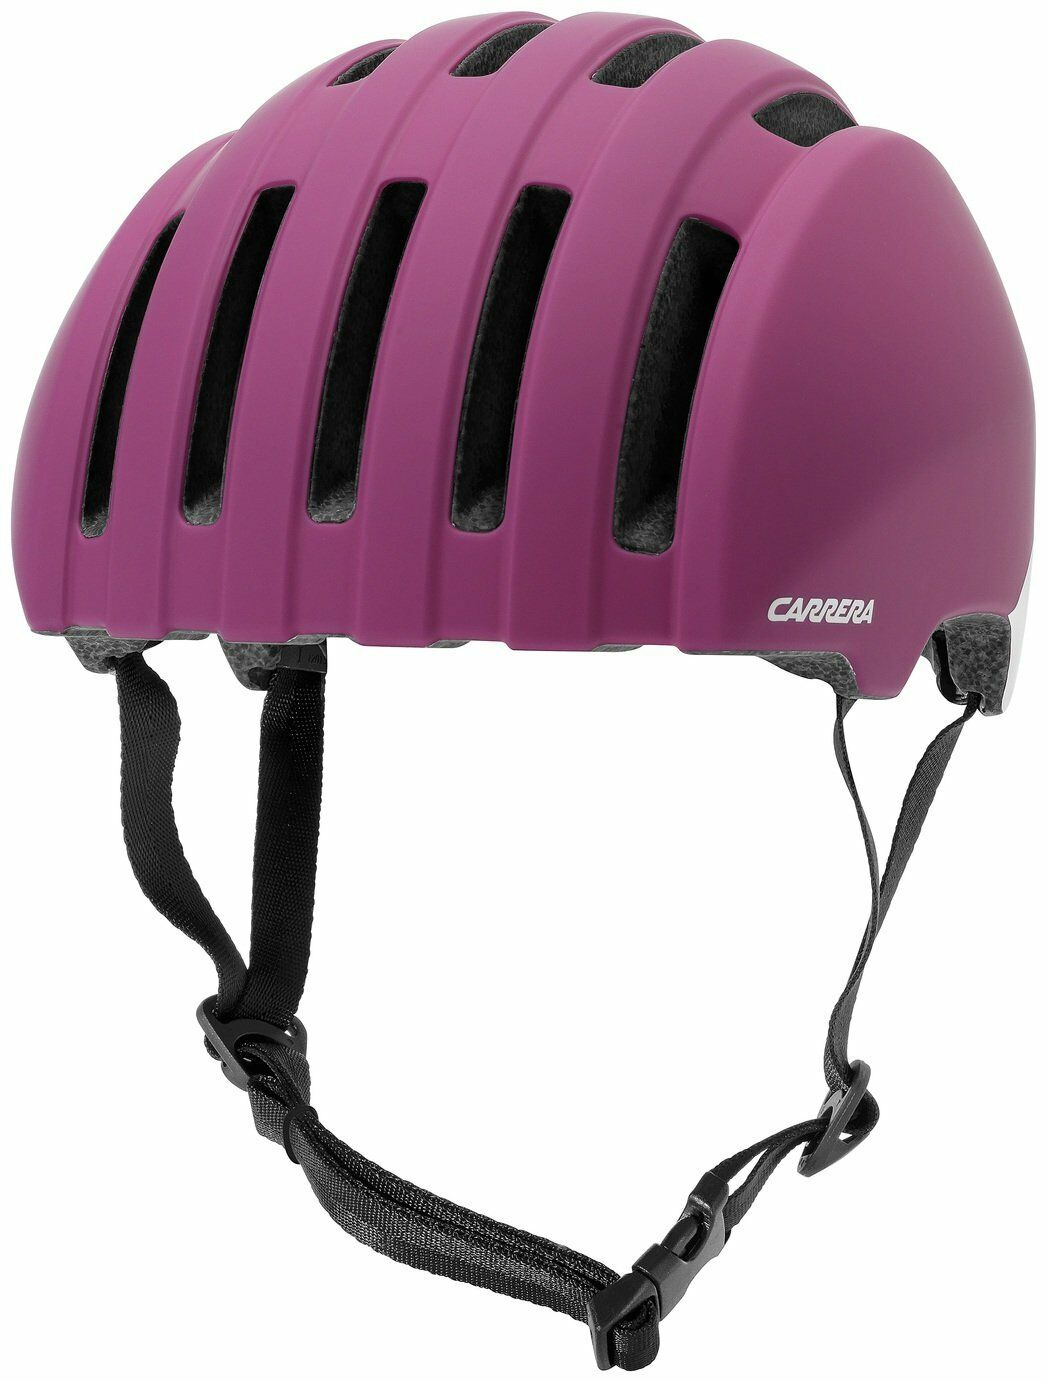 Carrera Precinct Foam Padded 15 Air Vents 55-58cm Helmet - Matte Fuchsia Ivory